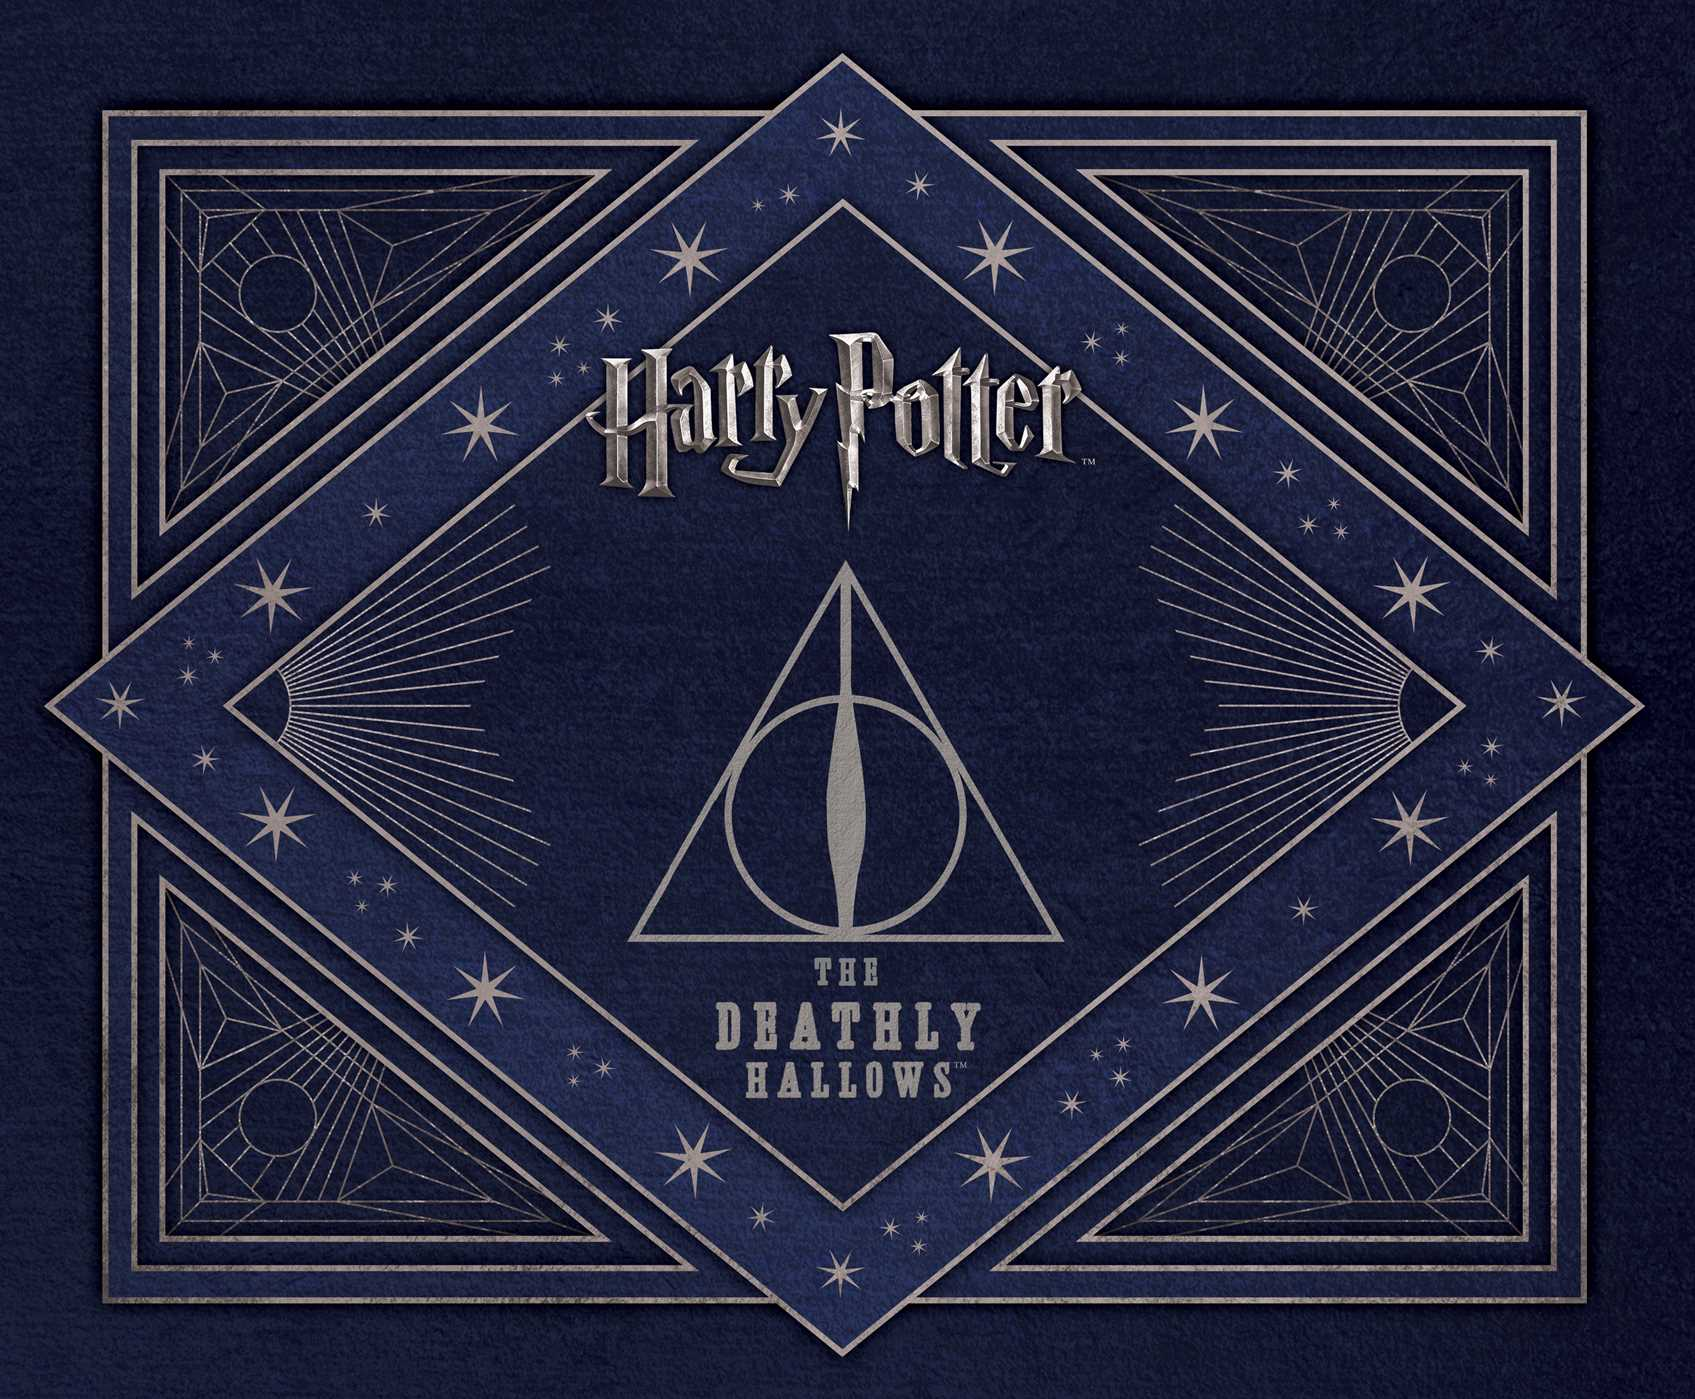 Harry Potter The Deathly Hallows Deluxe Stationery Set Book By